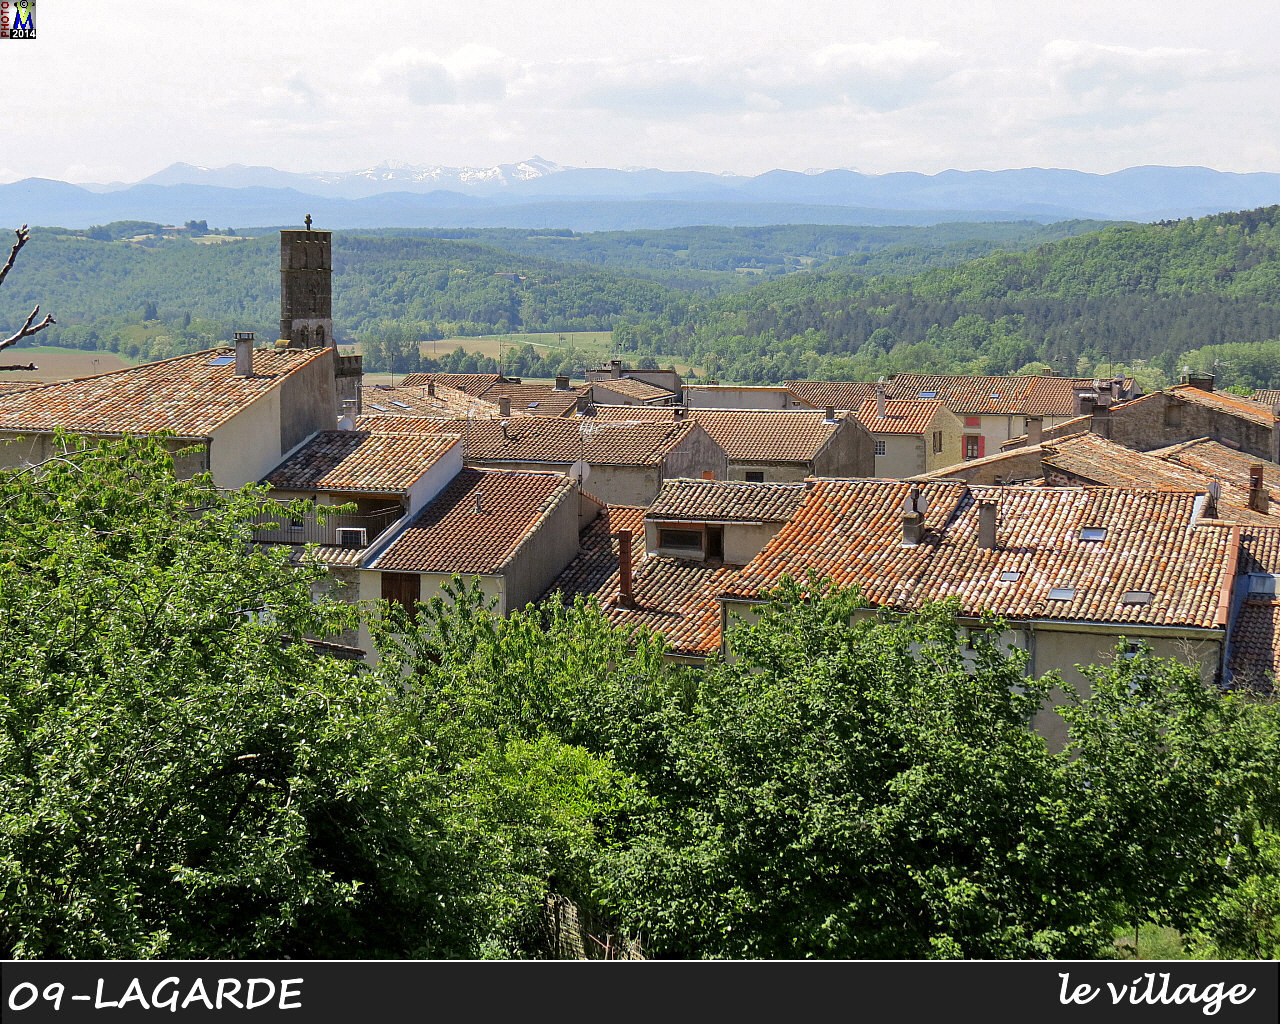 09LAGARDE_village_104.jpg